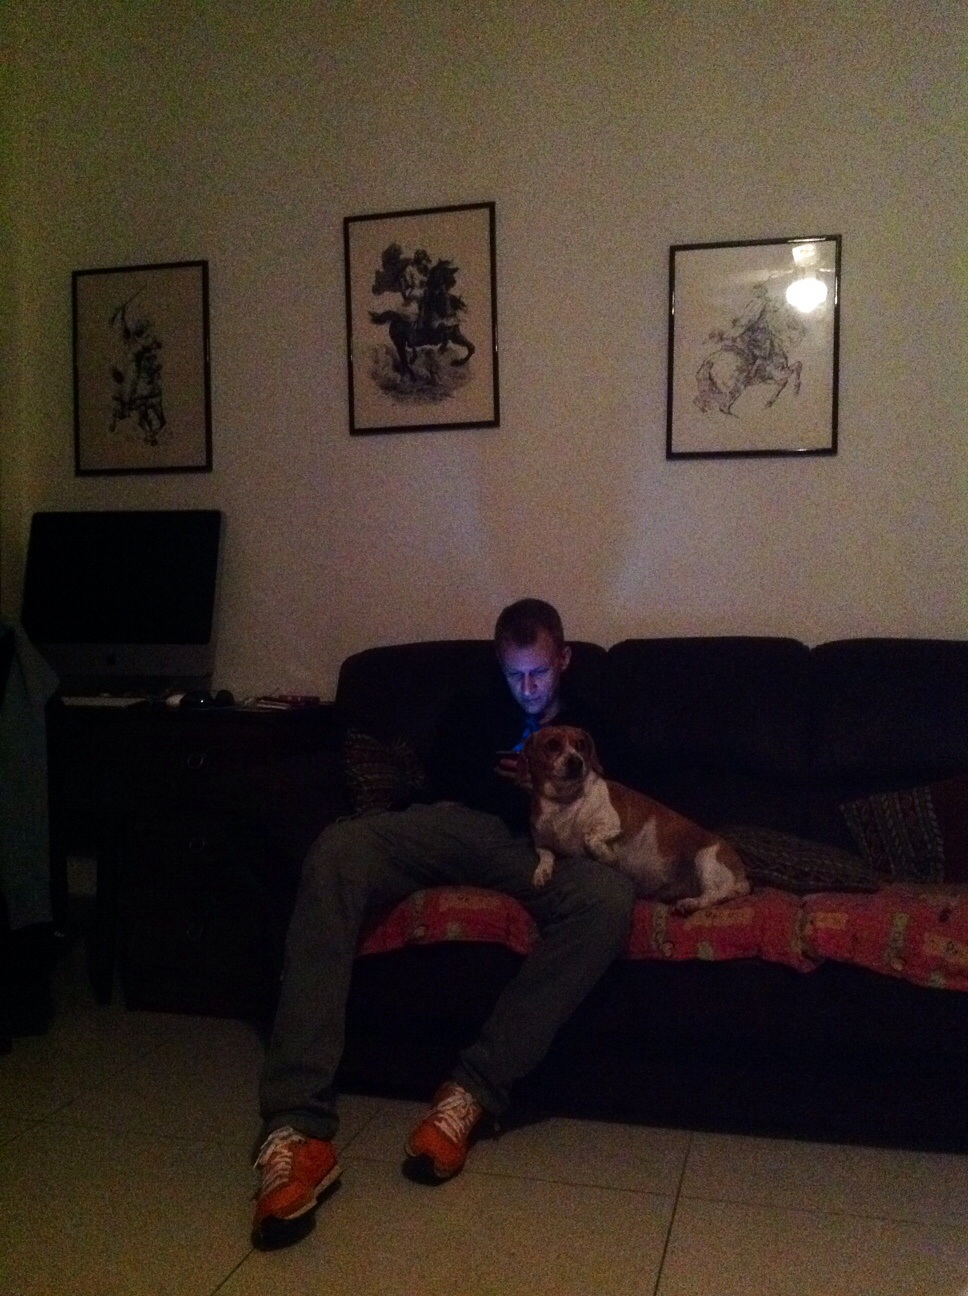 Couchsurfing: Our first Couchsurfer